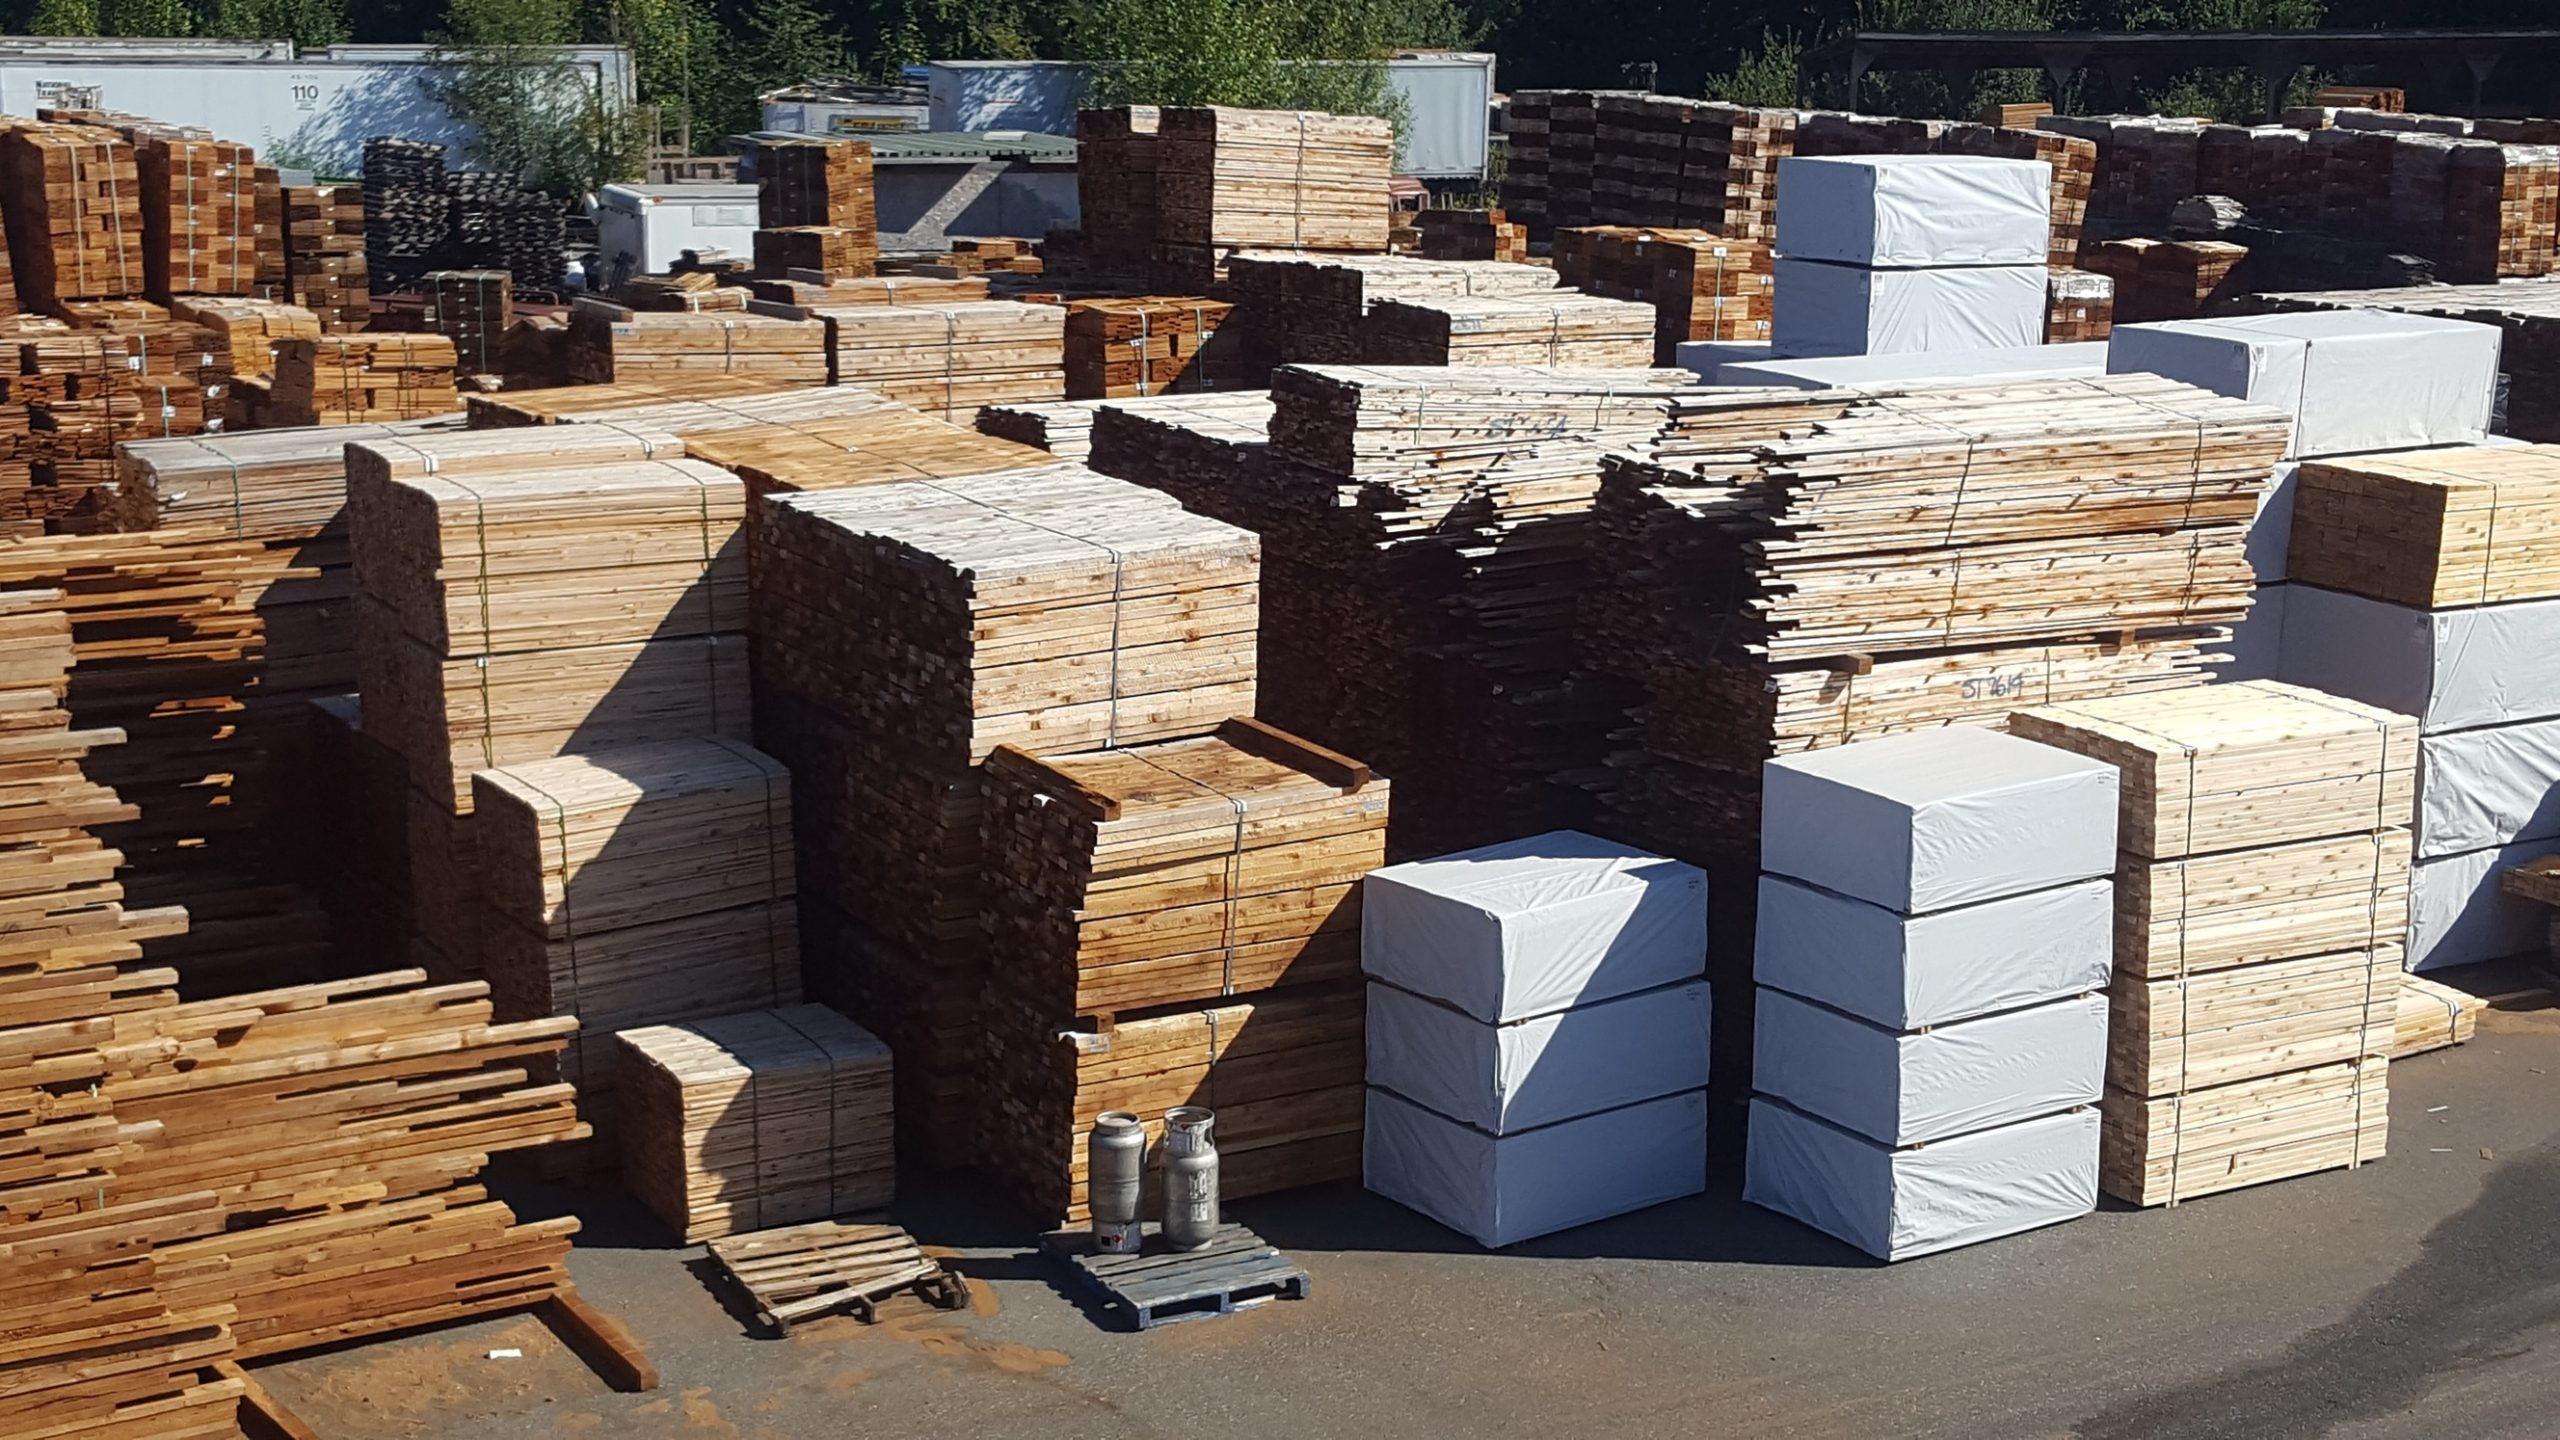 Red Cedar Products Canada - Lumber, Fence Panels, Sheds, Roofing, Enclosures & Wood Staining